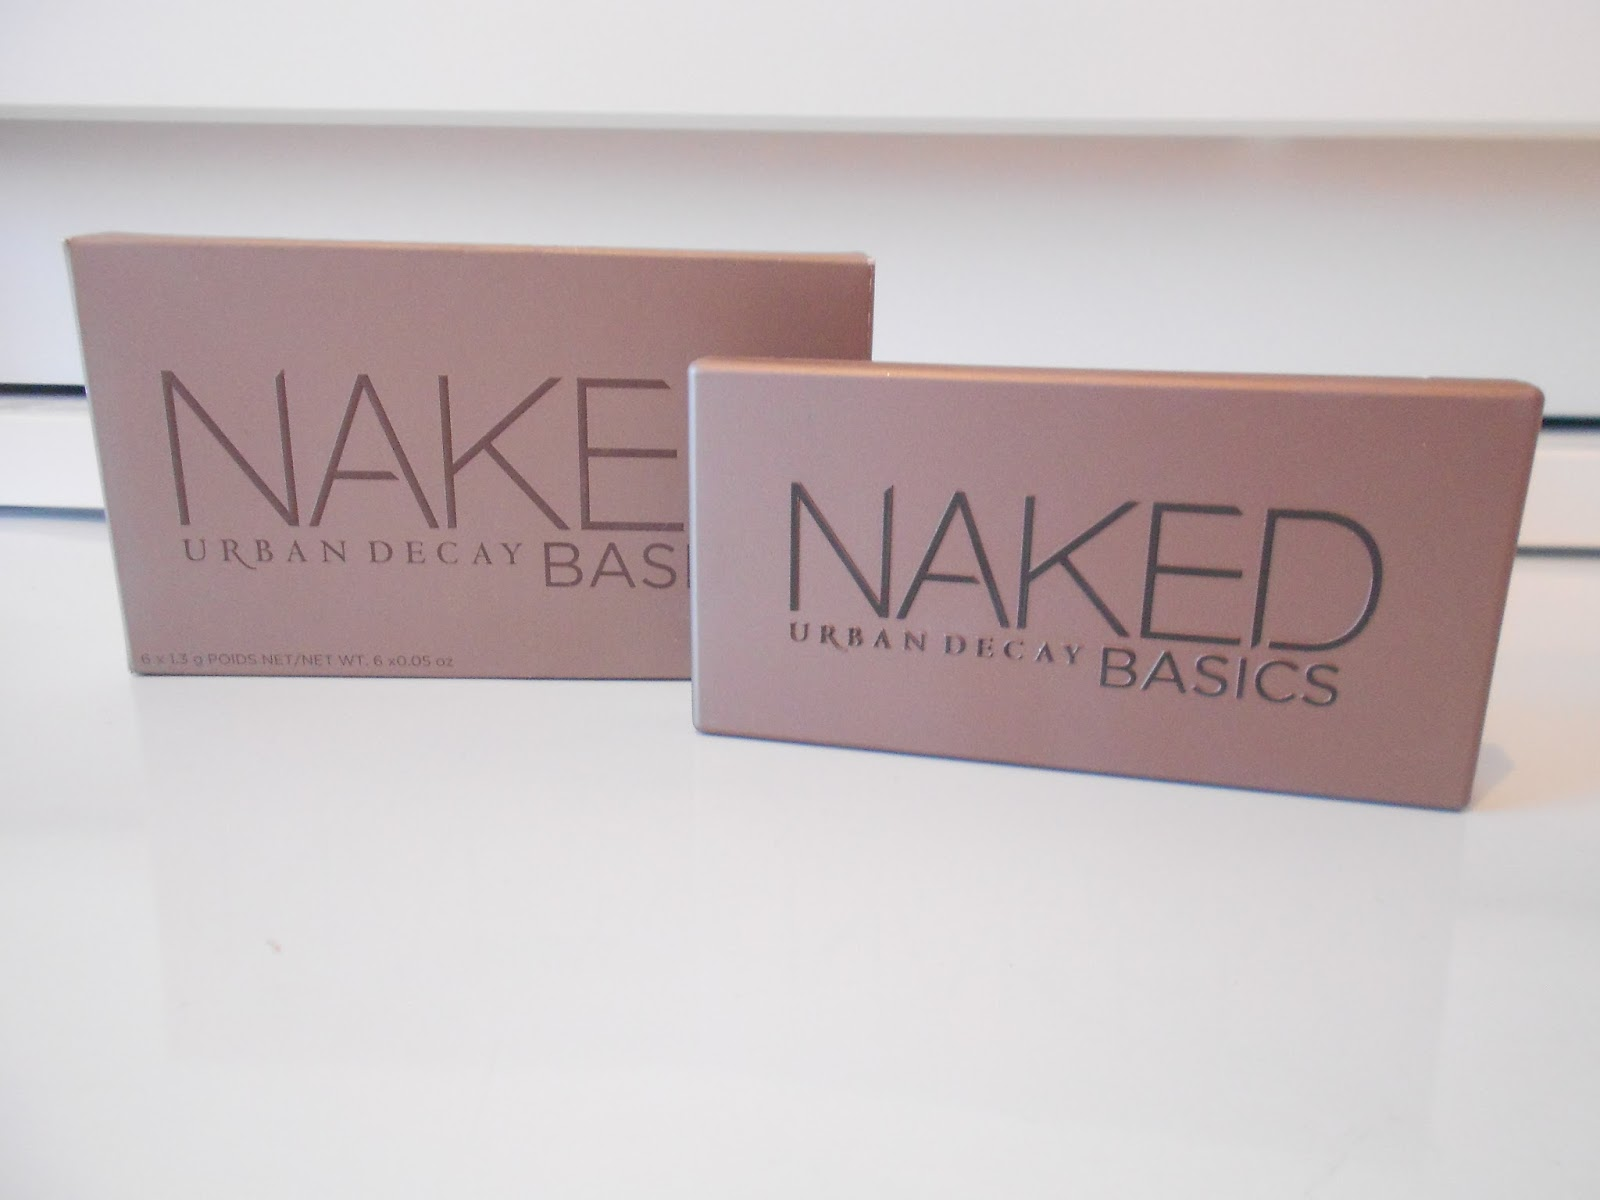 urban decay naked basics packaging